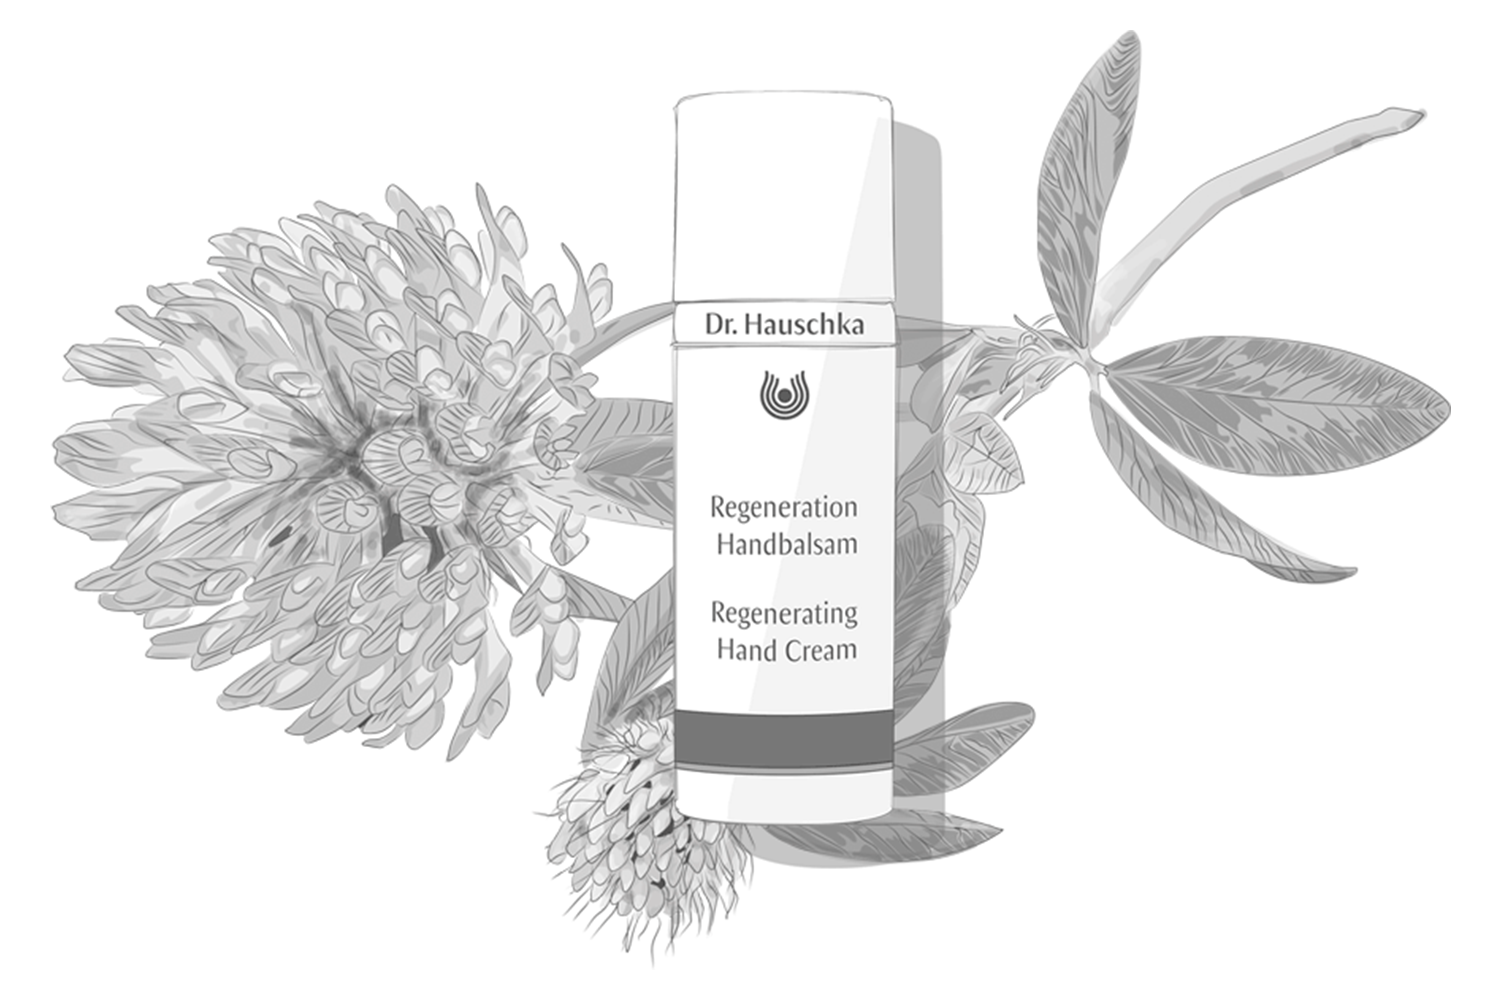 Dr. Hauschka Launches Regenerating Hand Cream